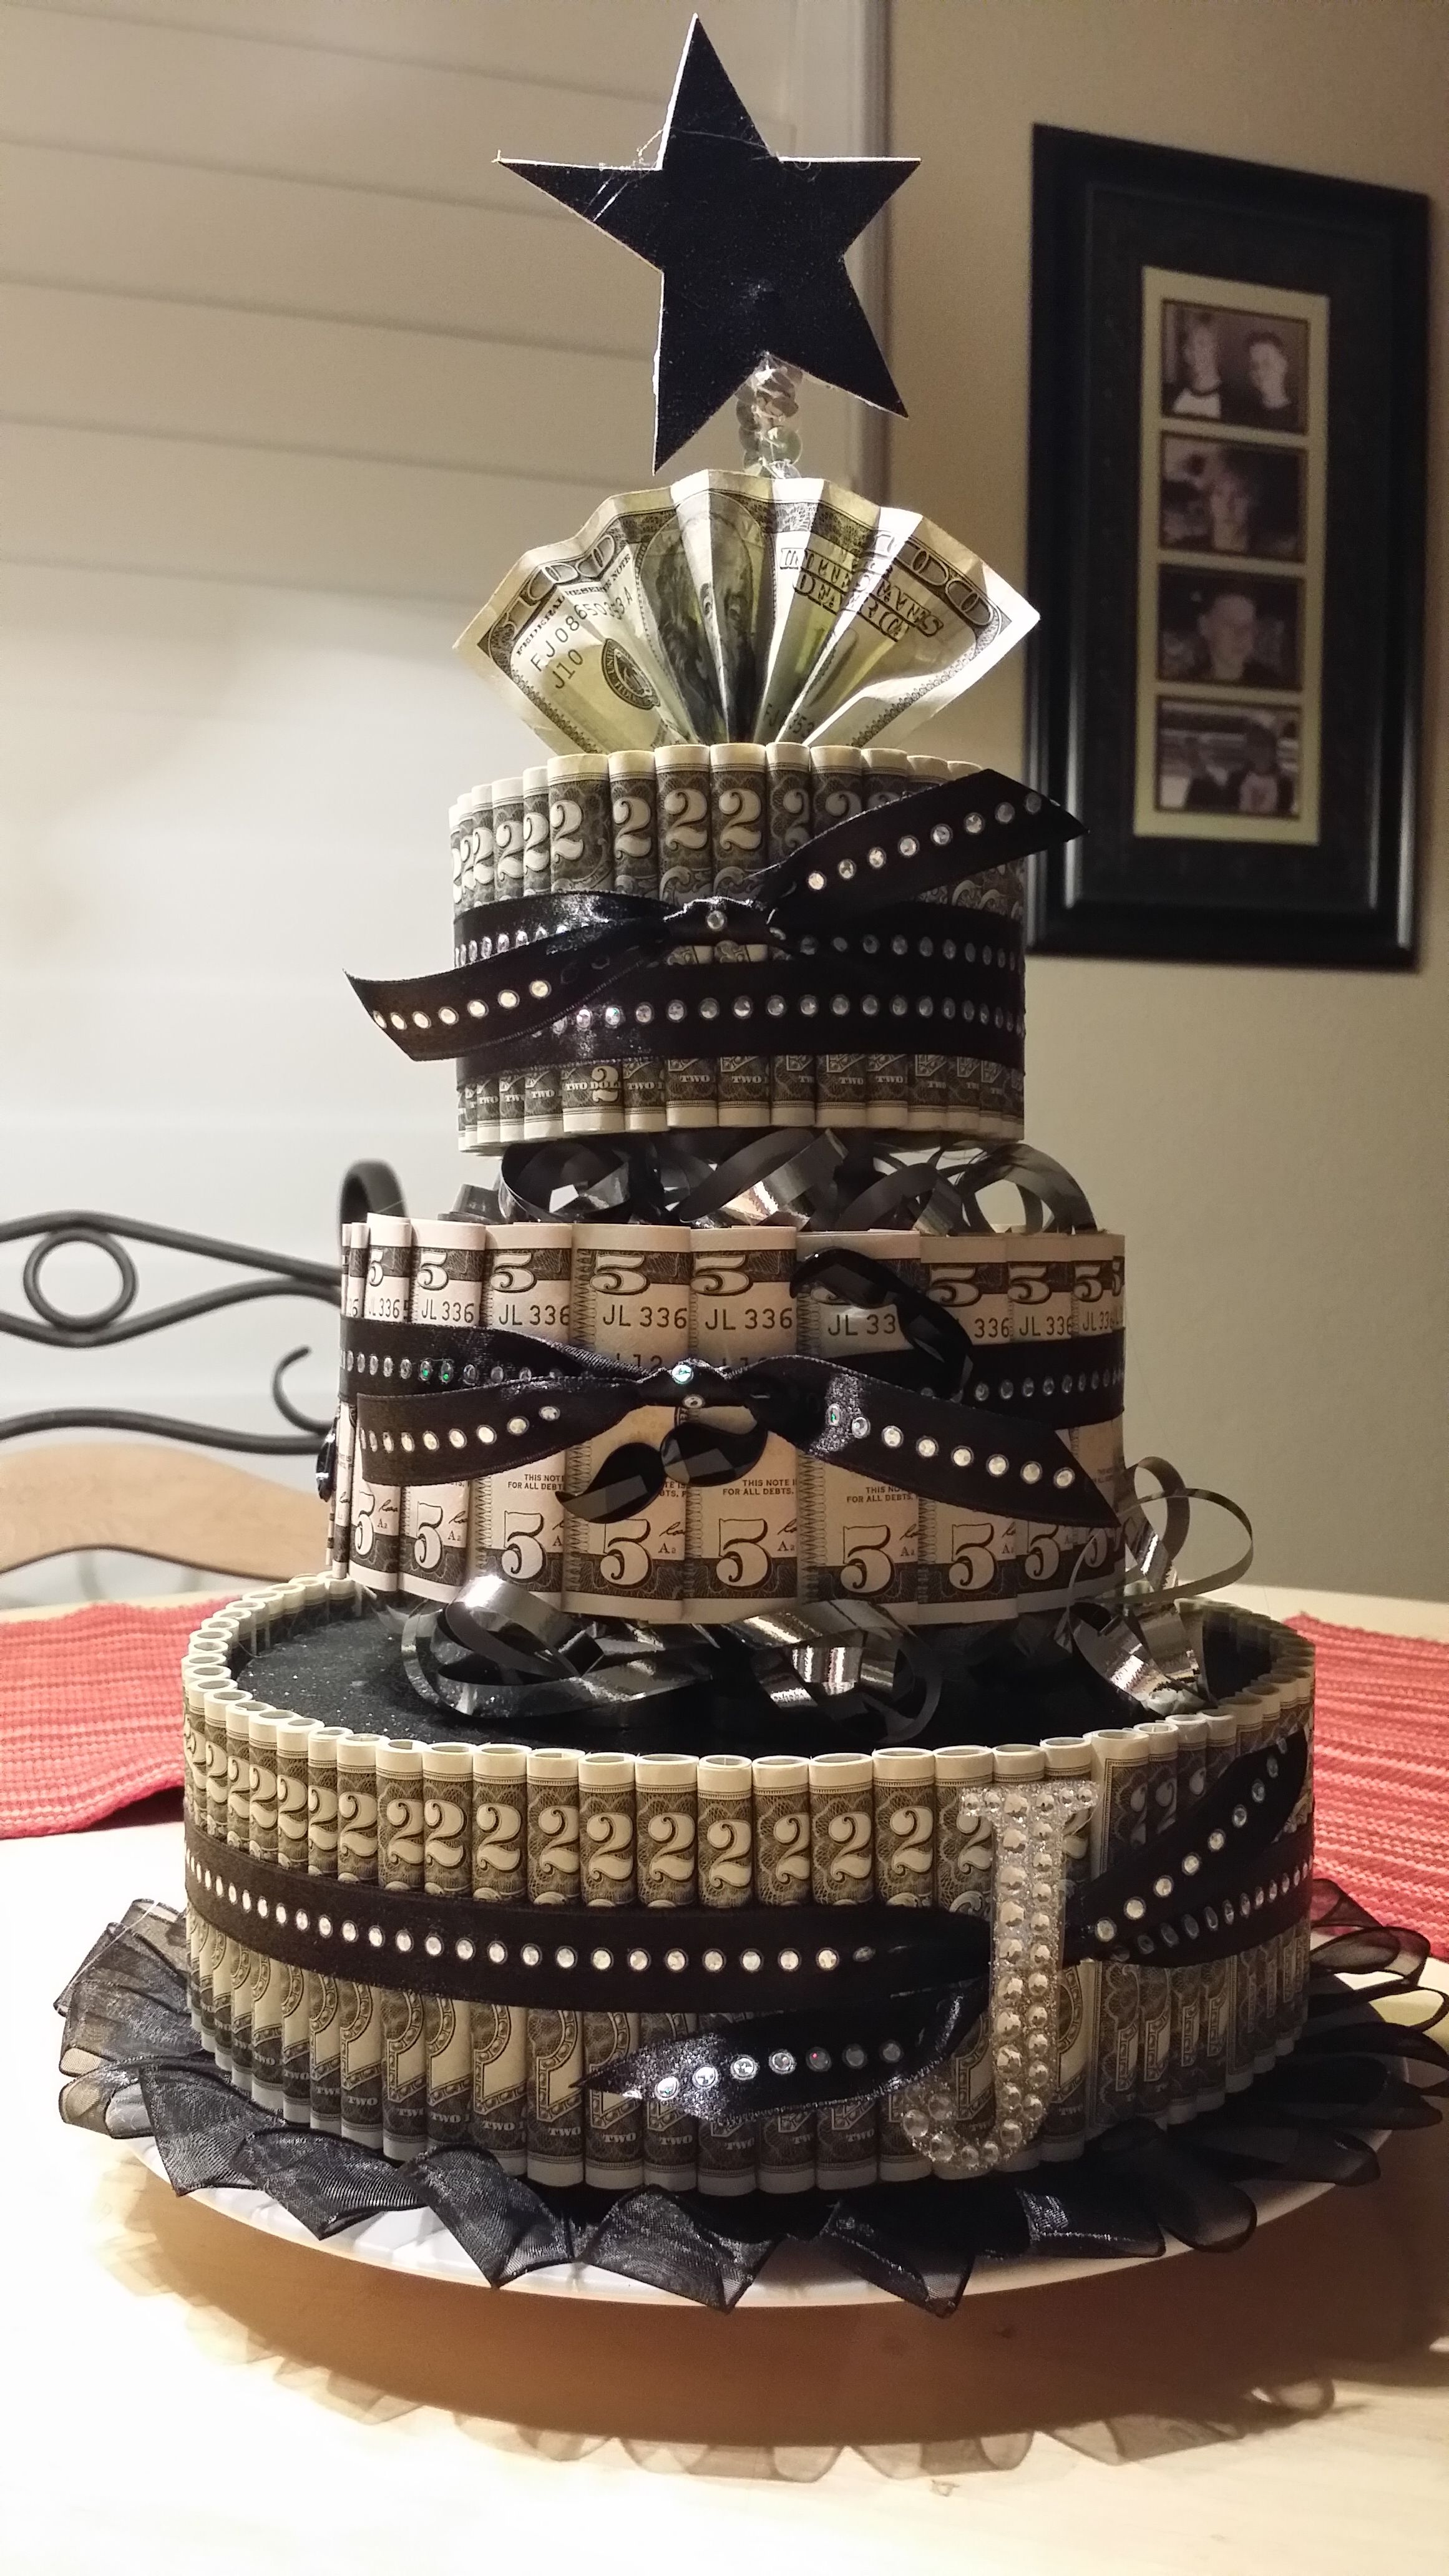 This Is A Cake I Made For My Sons 16th Birthday Birthday Money Birthday Money Gifts Money Birthday Cake